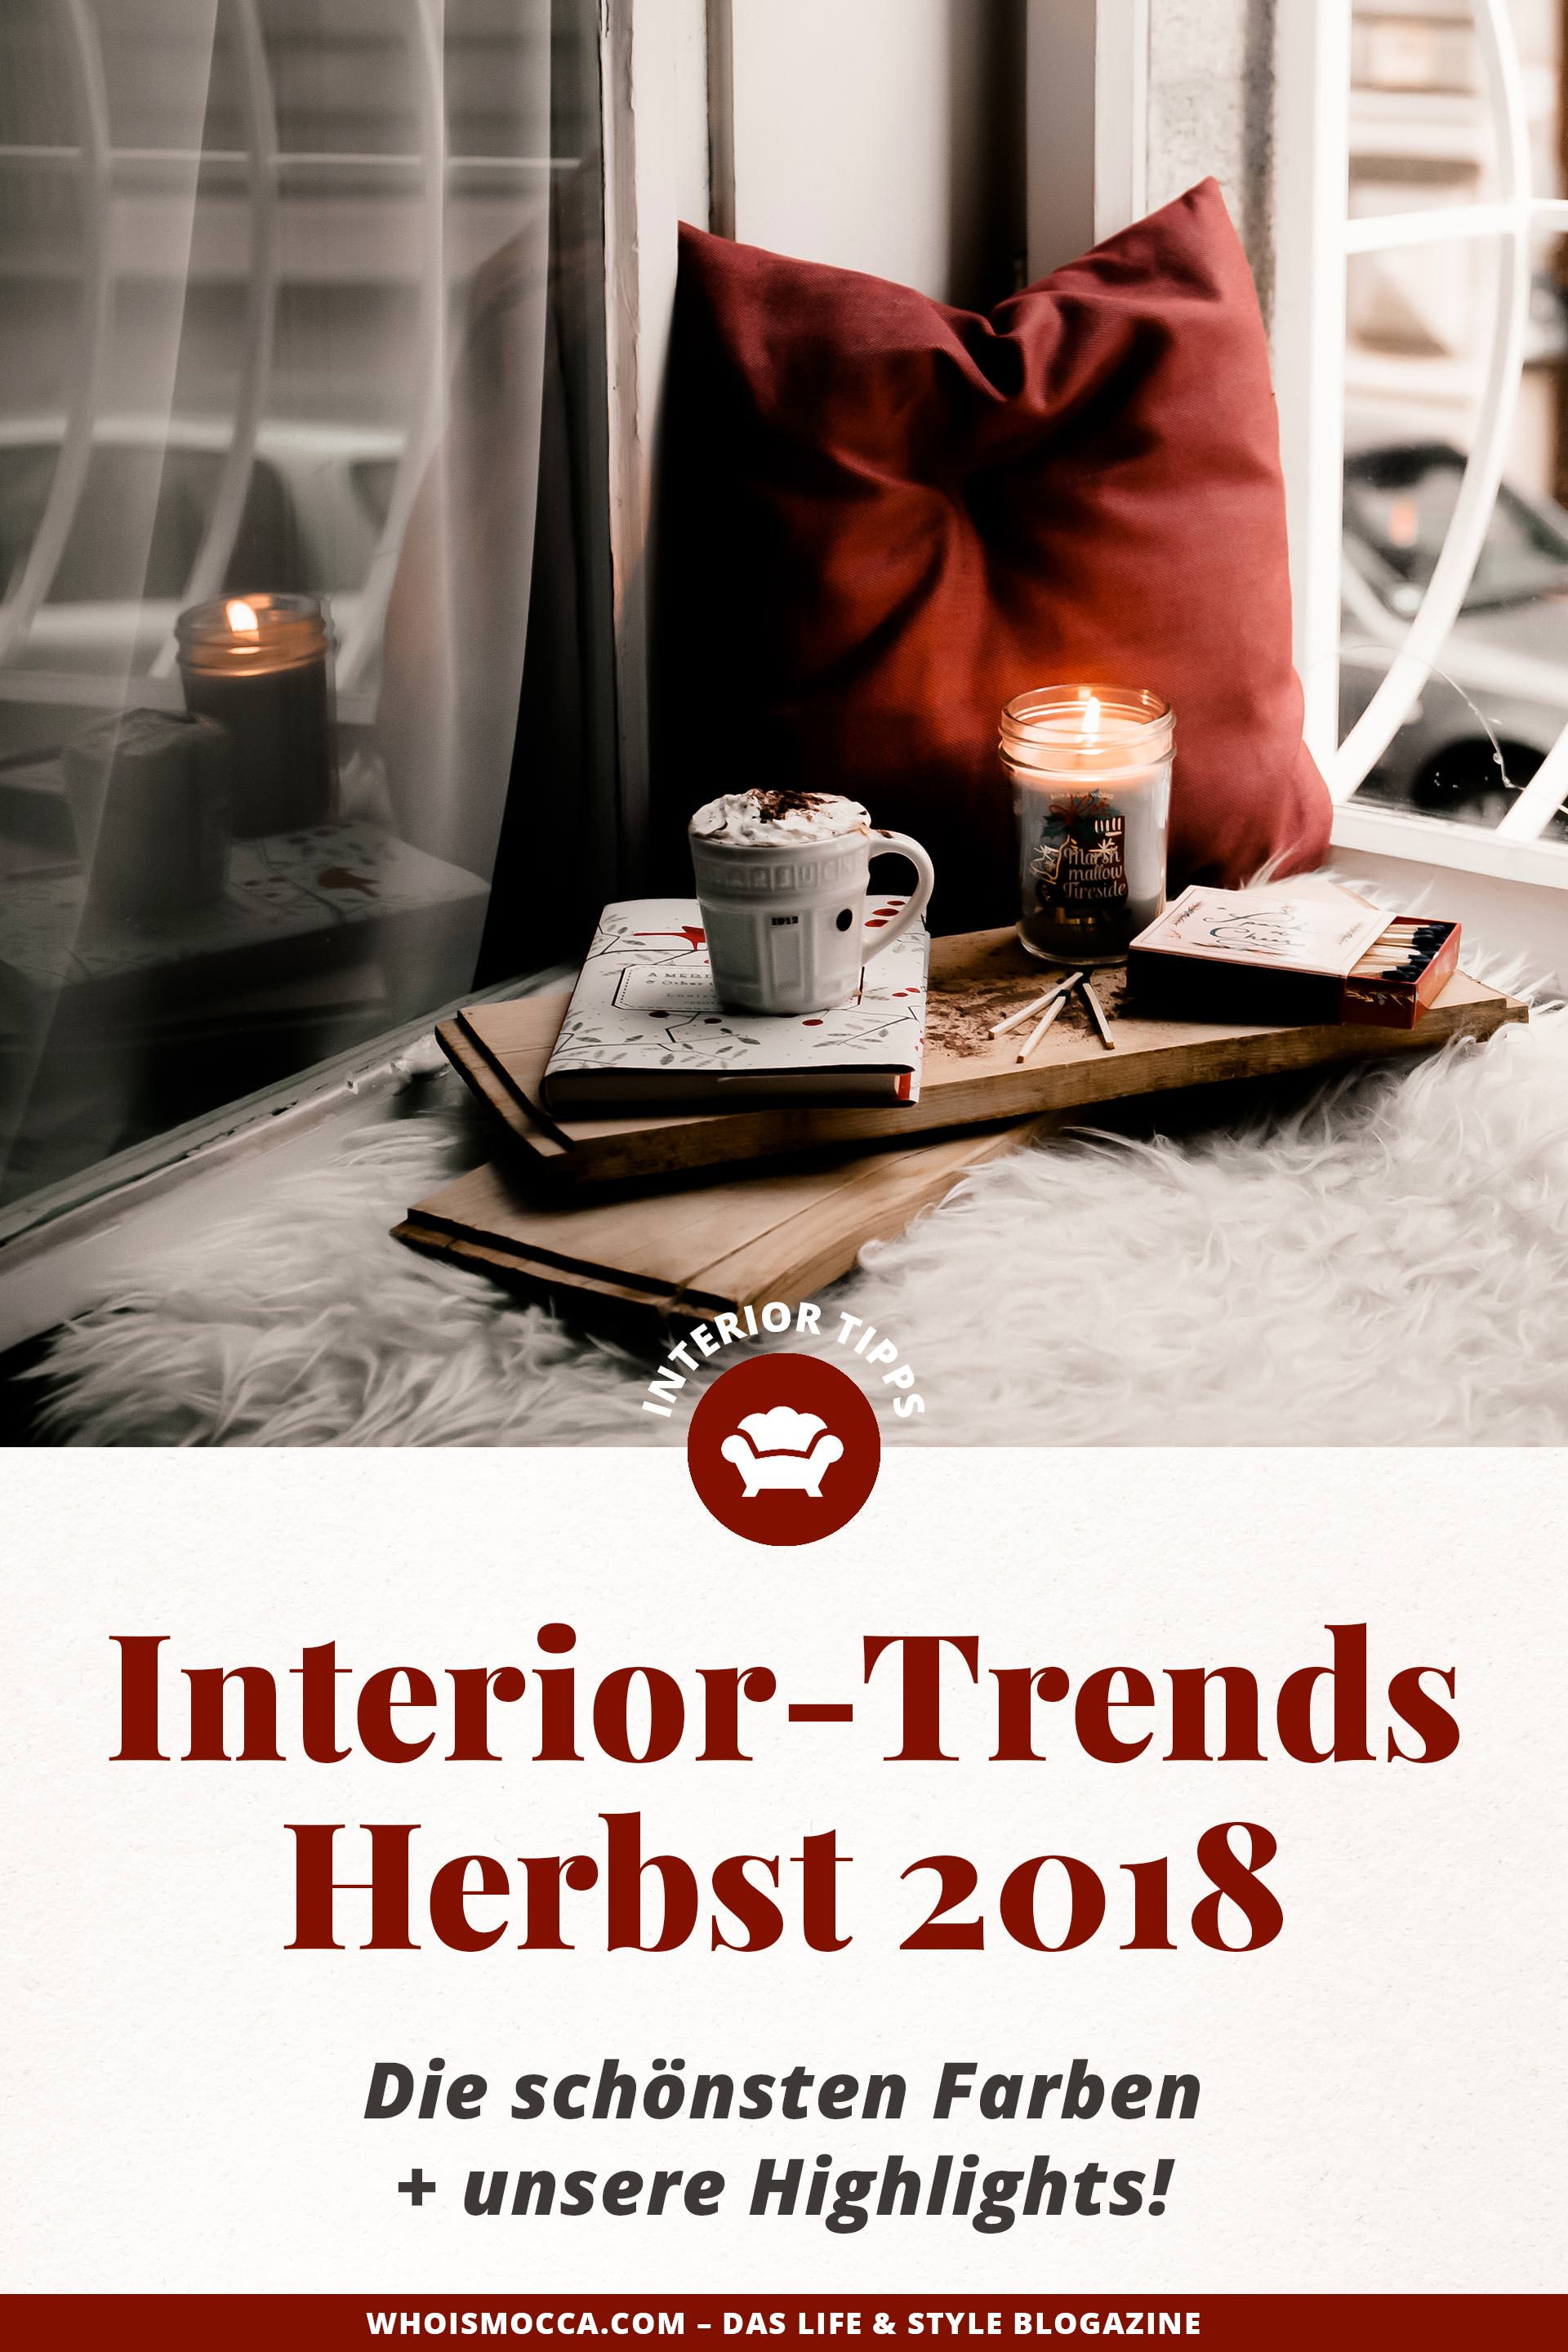 interior trends im herbst 2018 die sch nsten farben unsere highlights. Black Bedroom Furniture Sets. Home Design Ideas